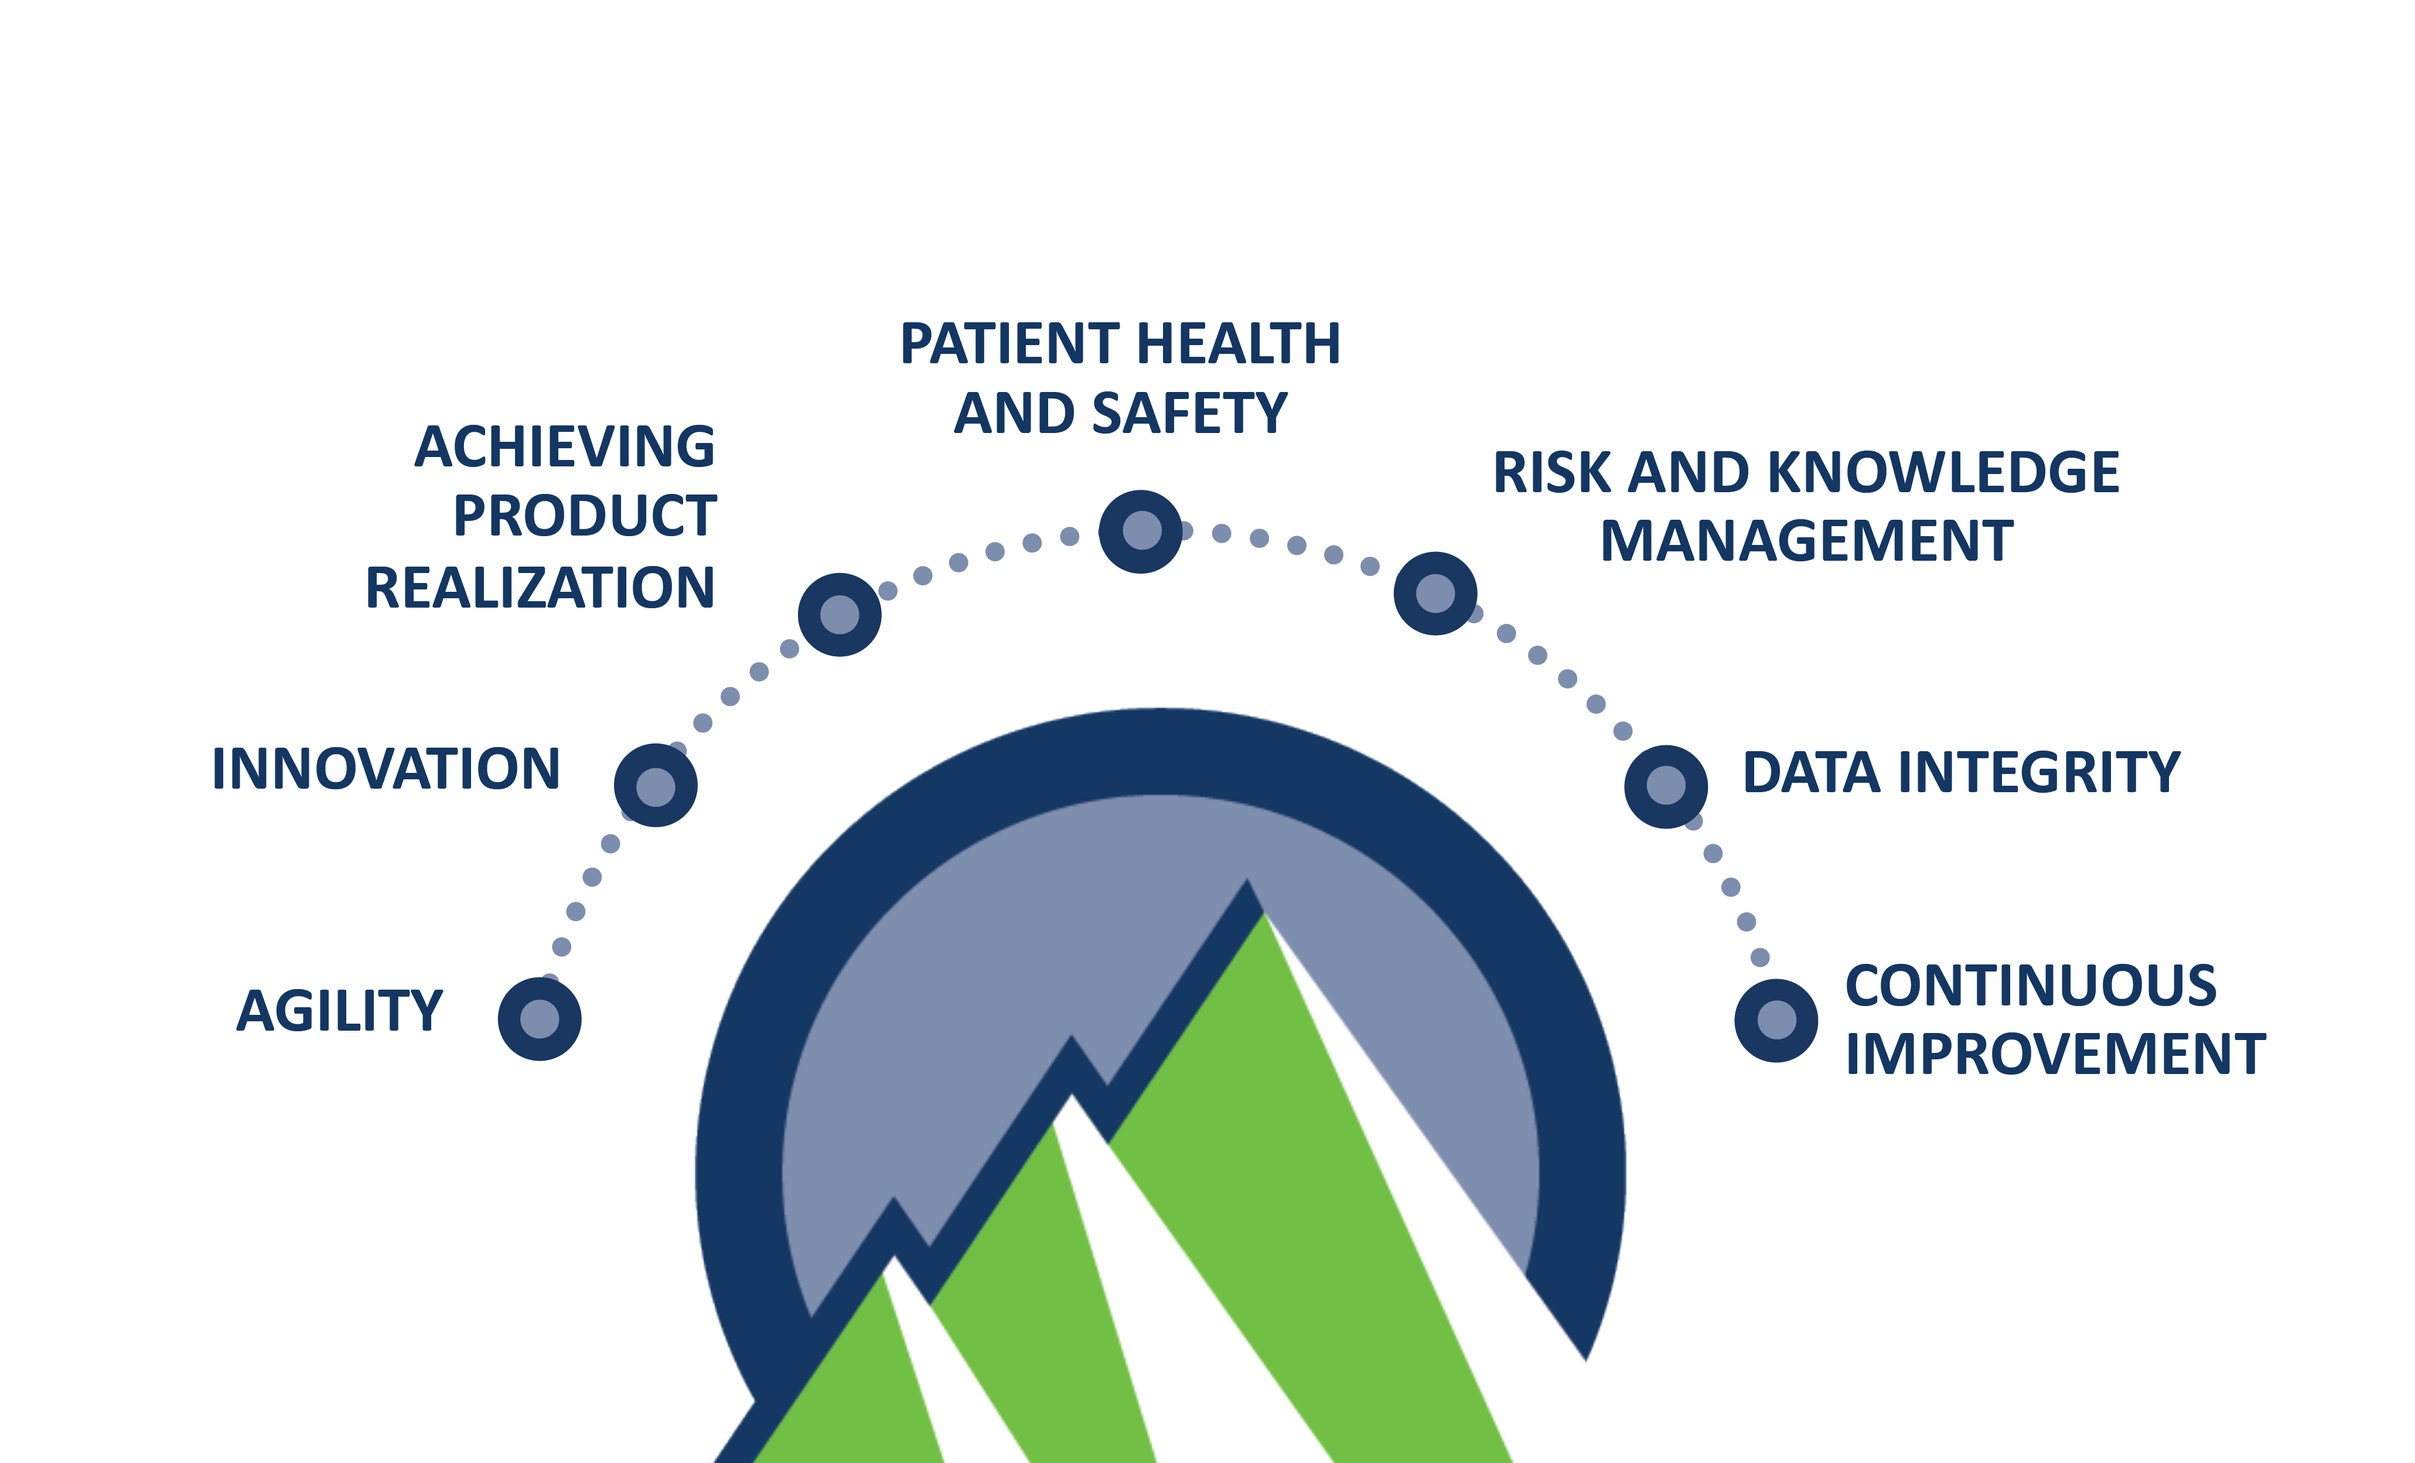 quality statement - At ElevateBio, our uncompromising commitment to Quality is driven by our dedication to our patients and our people.We hold patient health and safety to the highest regard through all phases of the product lifecycle while empowering our greatest asset, our people, with the tools they need to reshape the cell and gene therapy landscape.We foster an innovative Quality Culture by celebrating agility and continuous improvement.